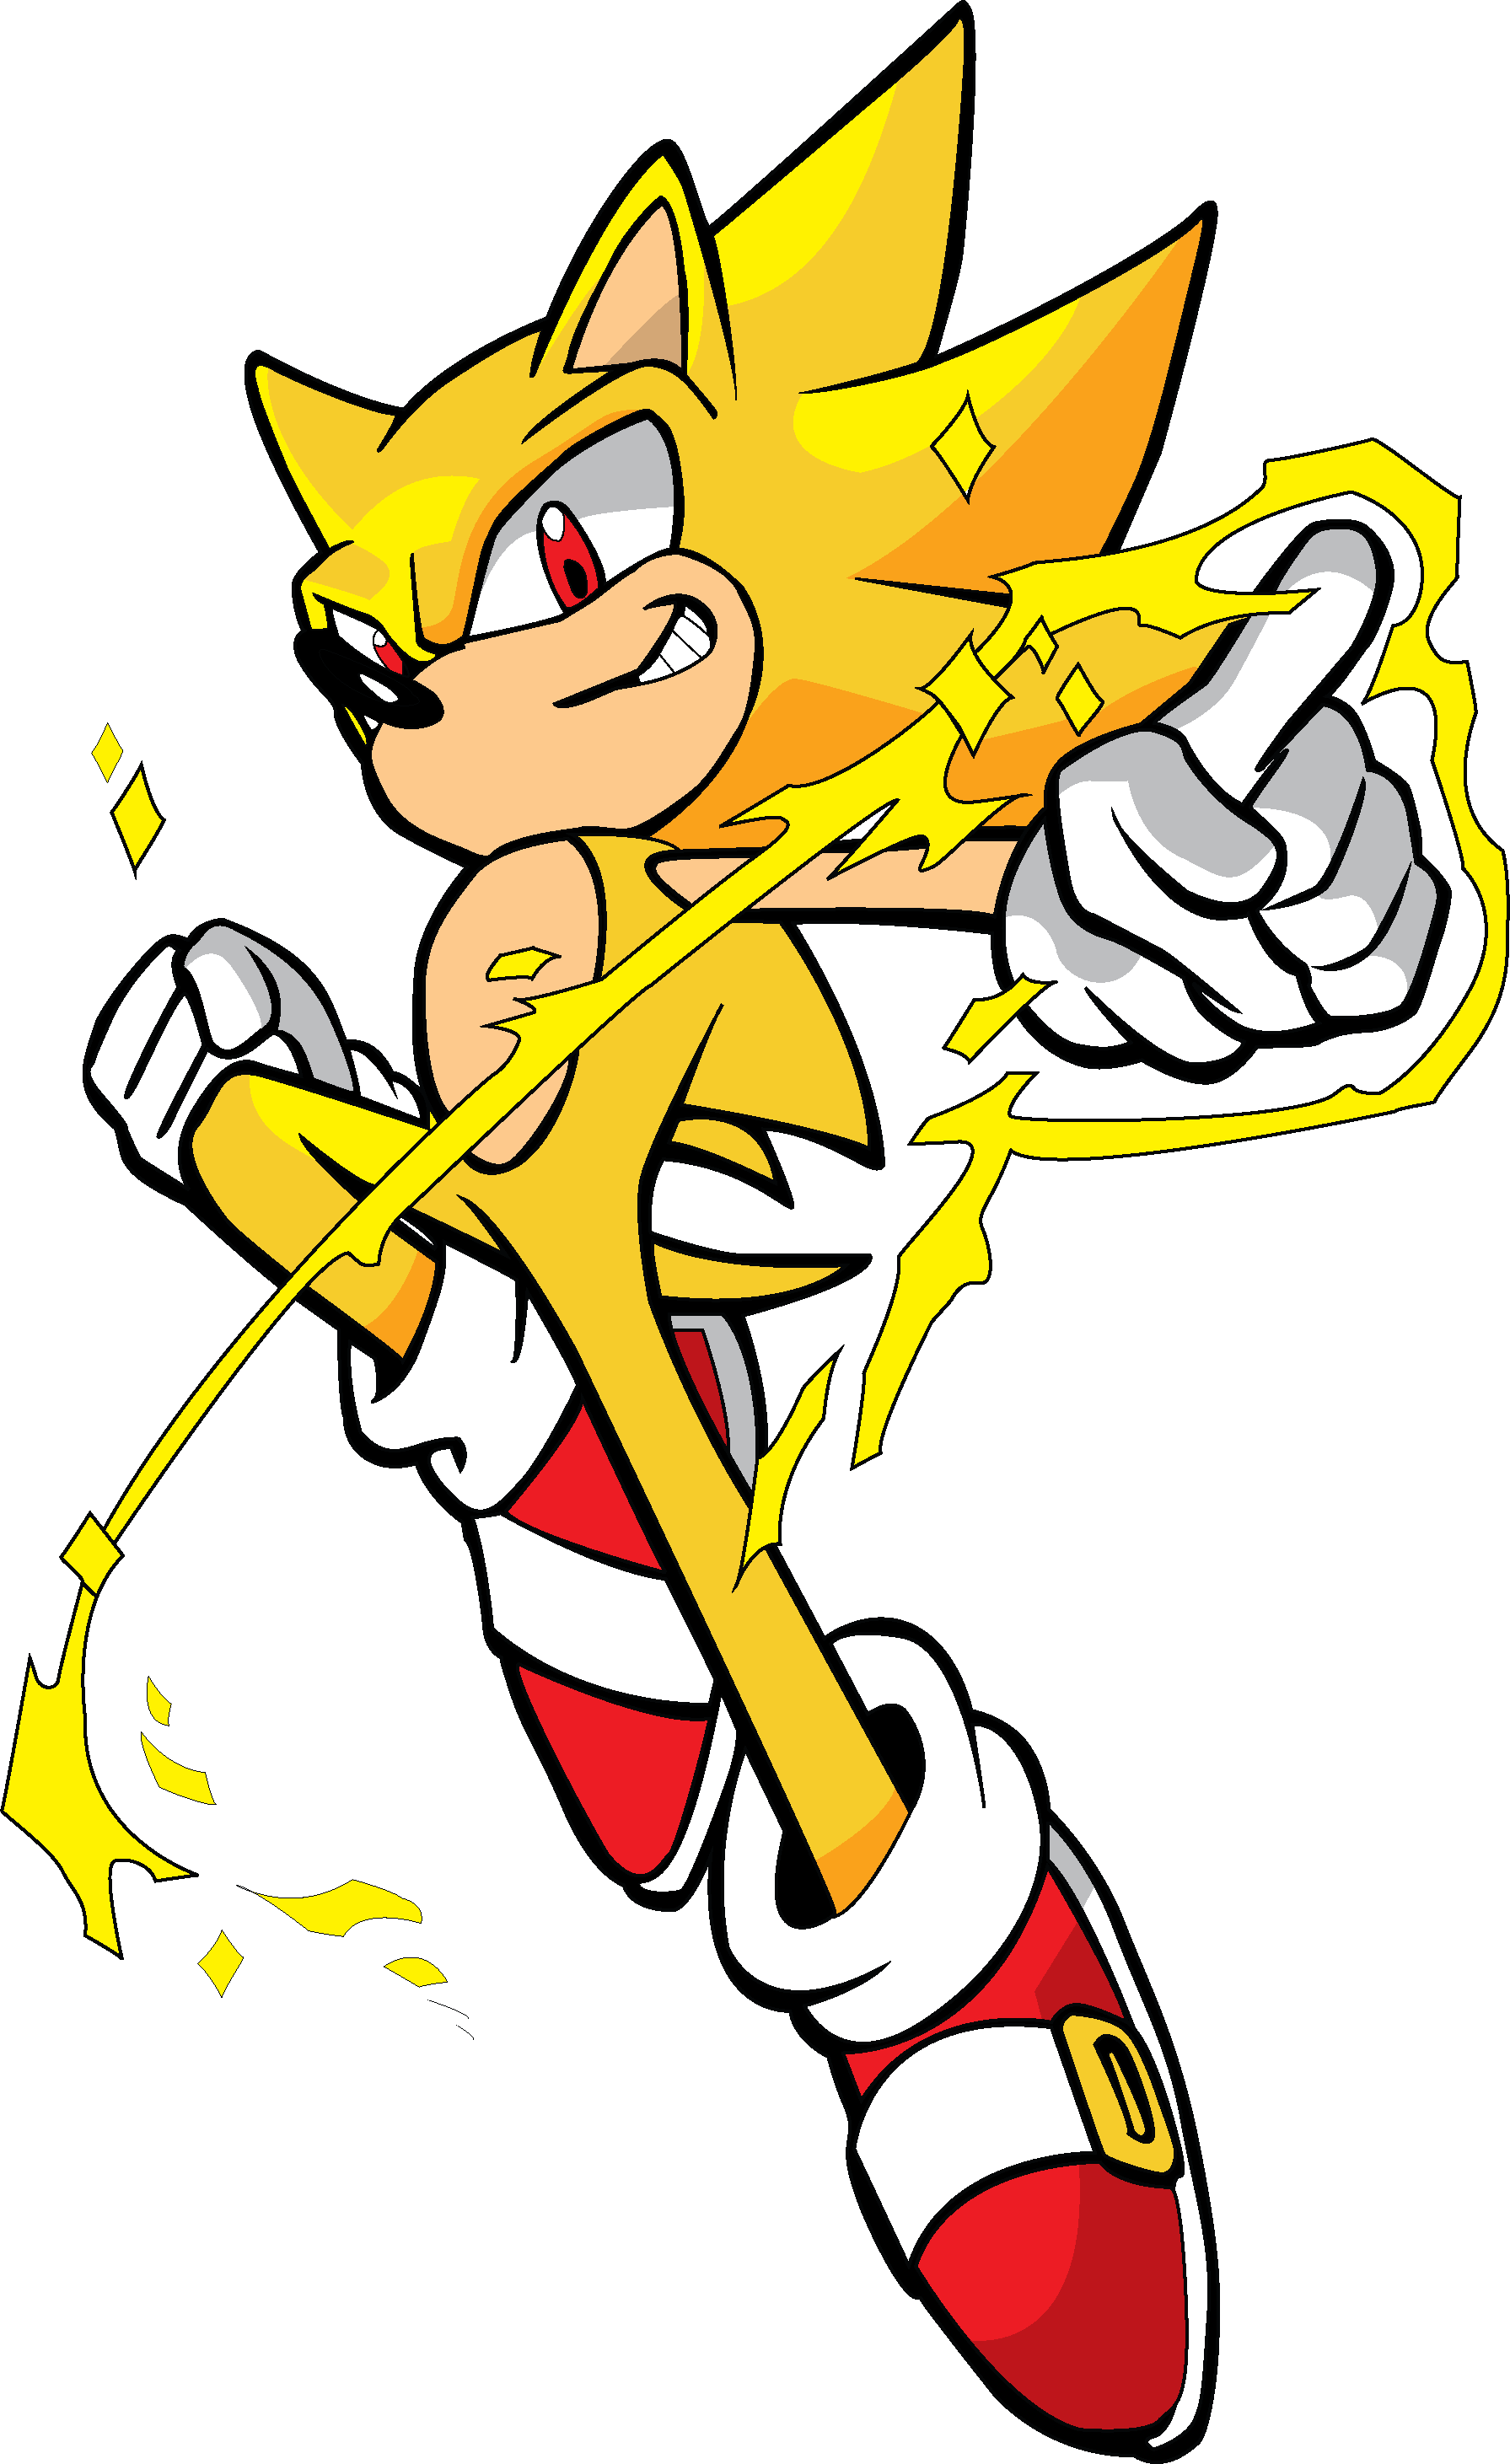 Vignette drawing gambar. Image super sonic colored